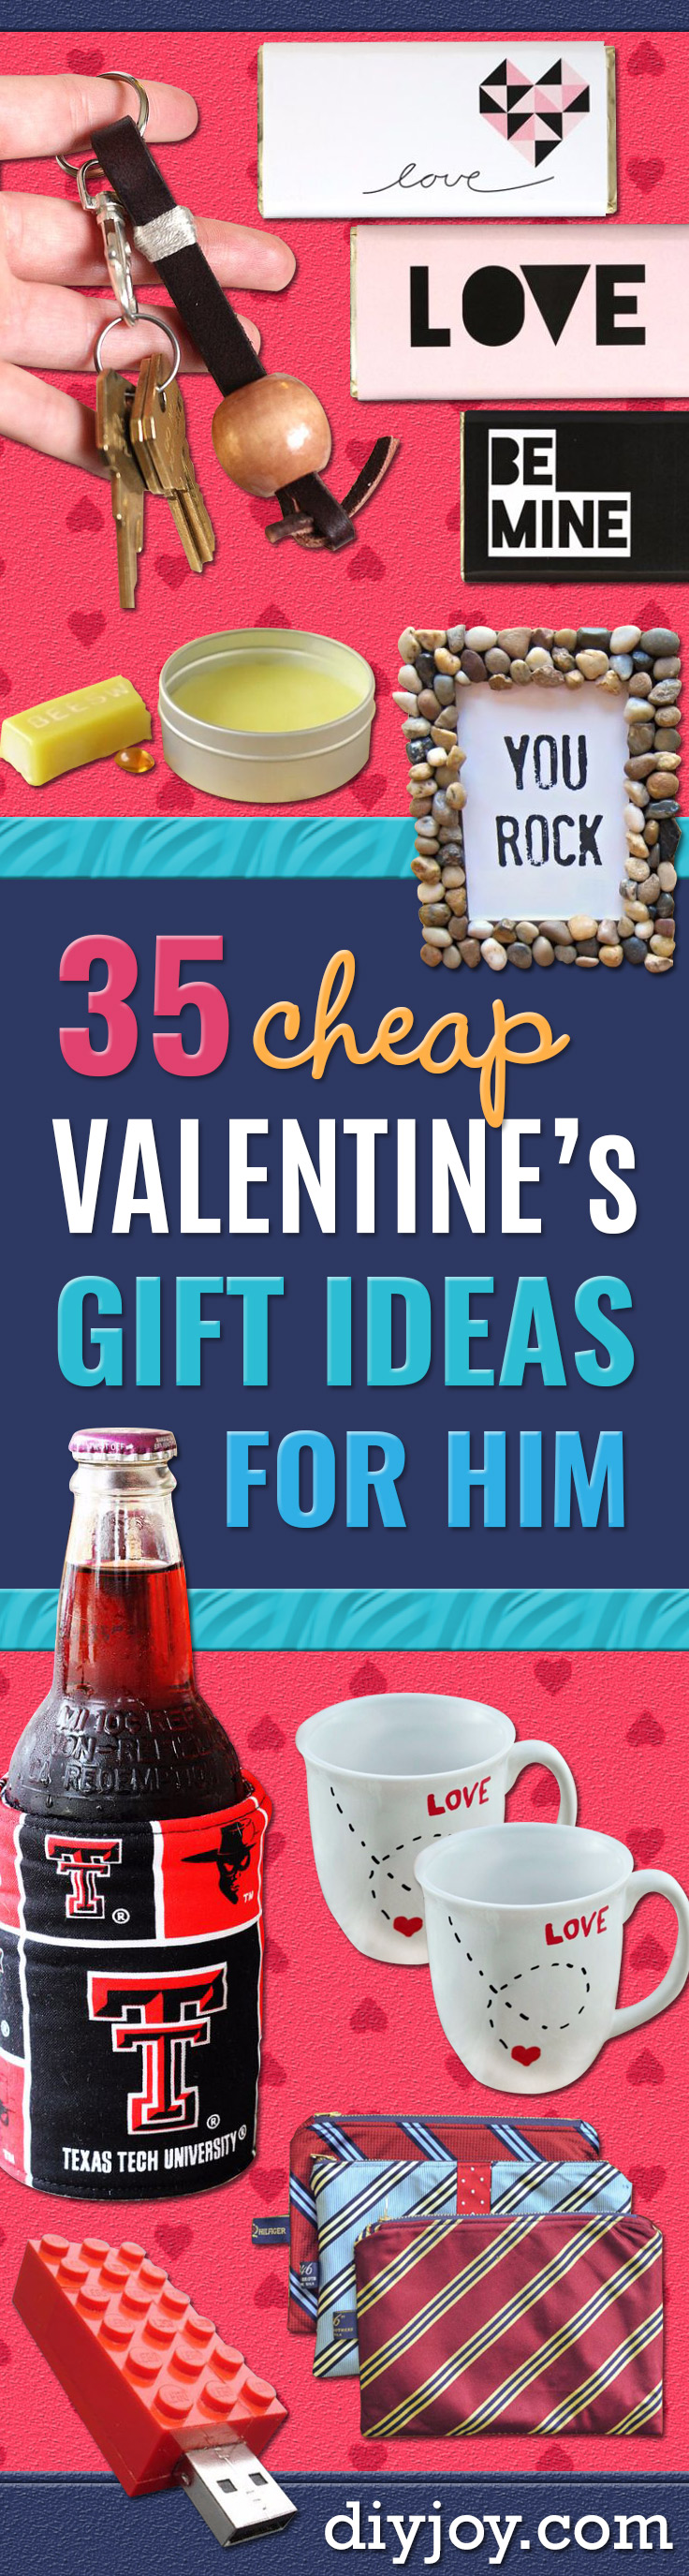 35 cheap valentine s gift ideas for him